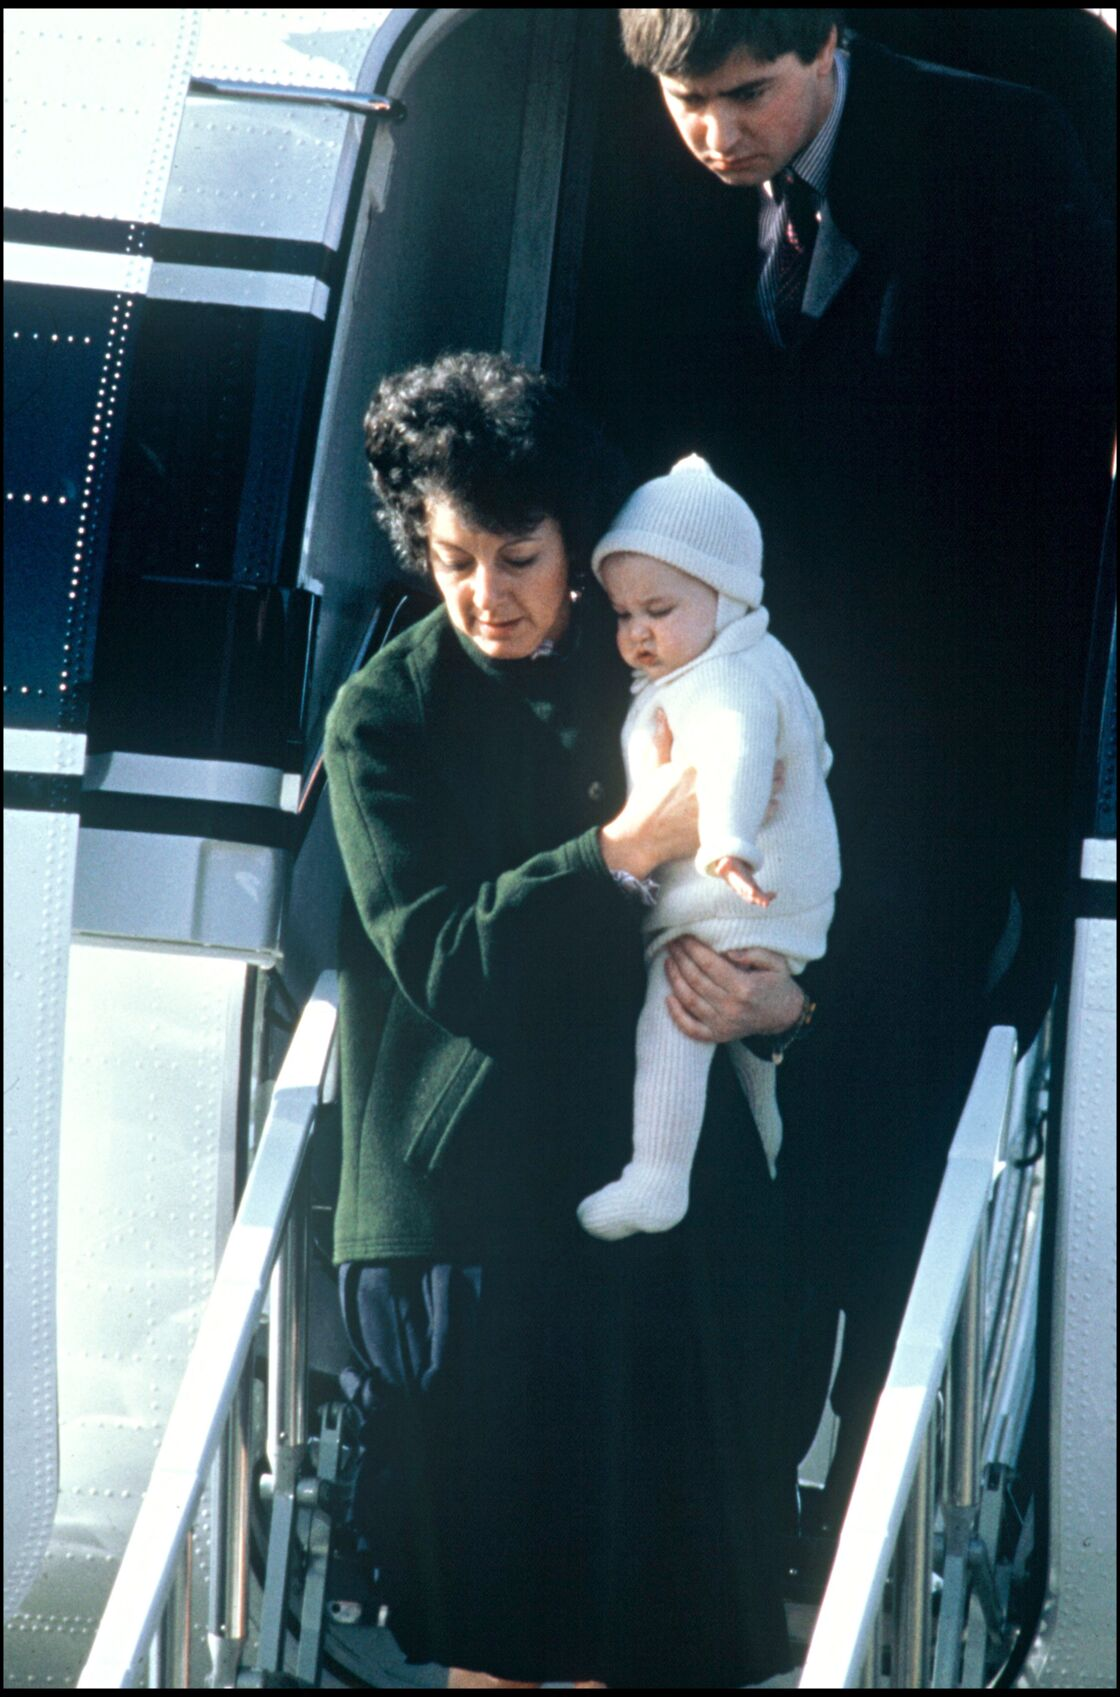 Barbara Barnes et le prince William photographiés à la sortie d'un avion en 1983